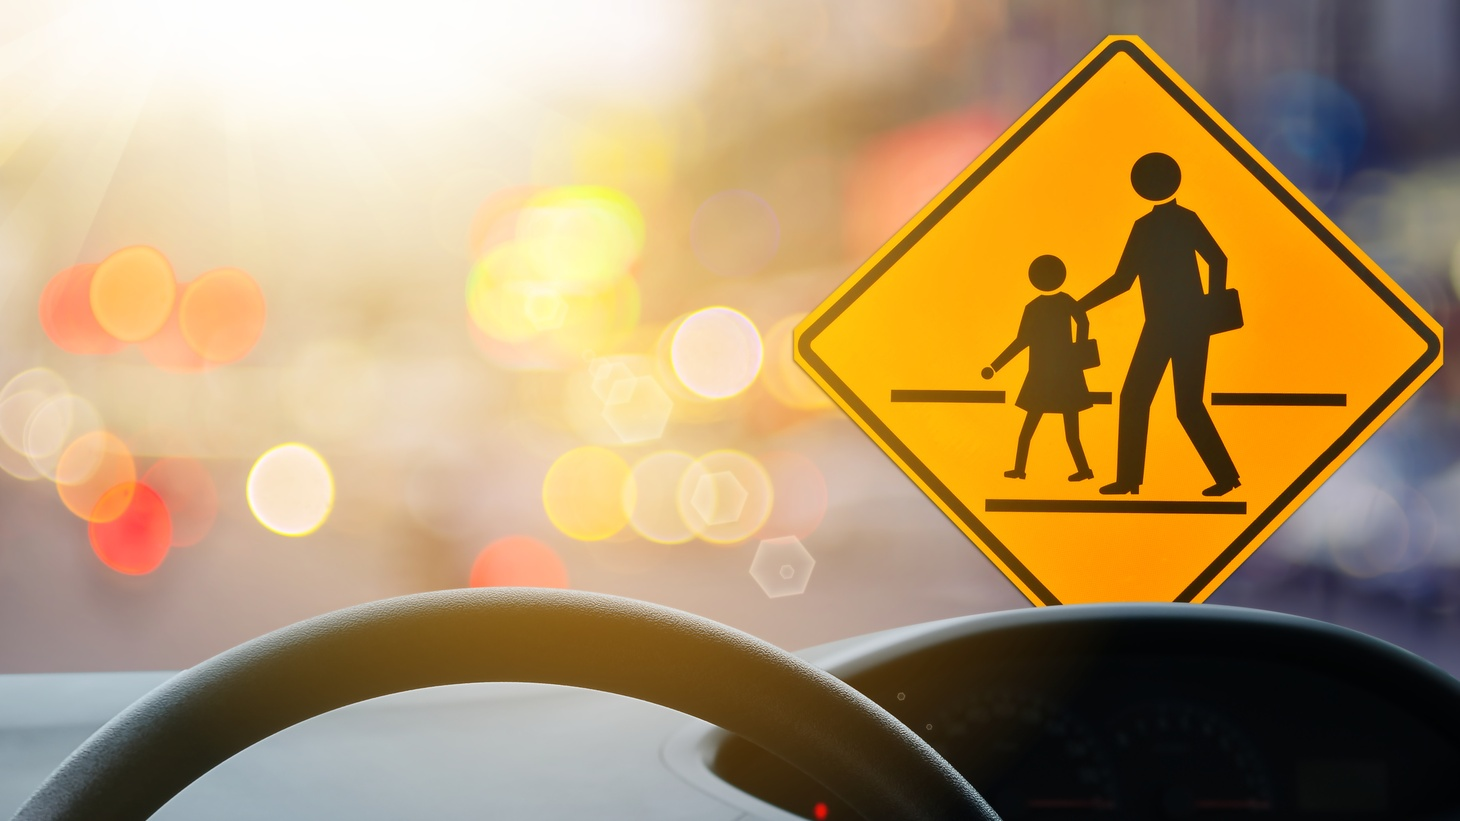 """As LAUSD campuses reopened on August 16, roads got clogged. """"We have over 25,000 teachers all getting back on the roadways. There are about 50,000 staff. All of them getting back to school — it definitely impacts the morning and afternoon commute,"""" says traffic reporter Meghan Reyes."""